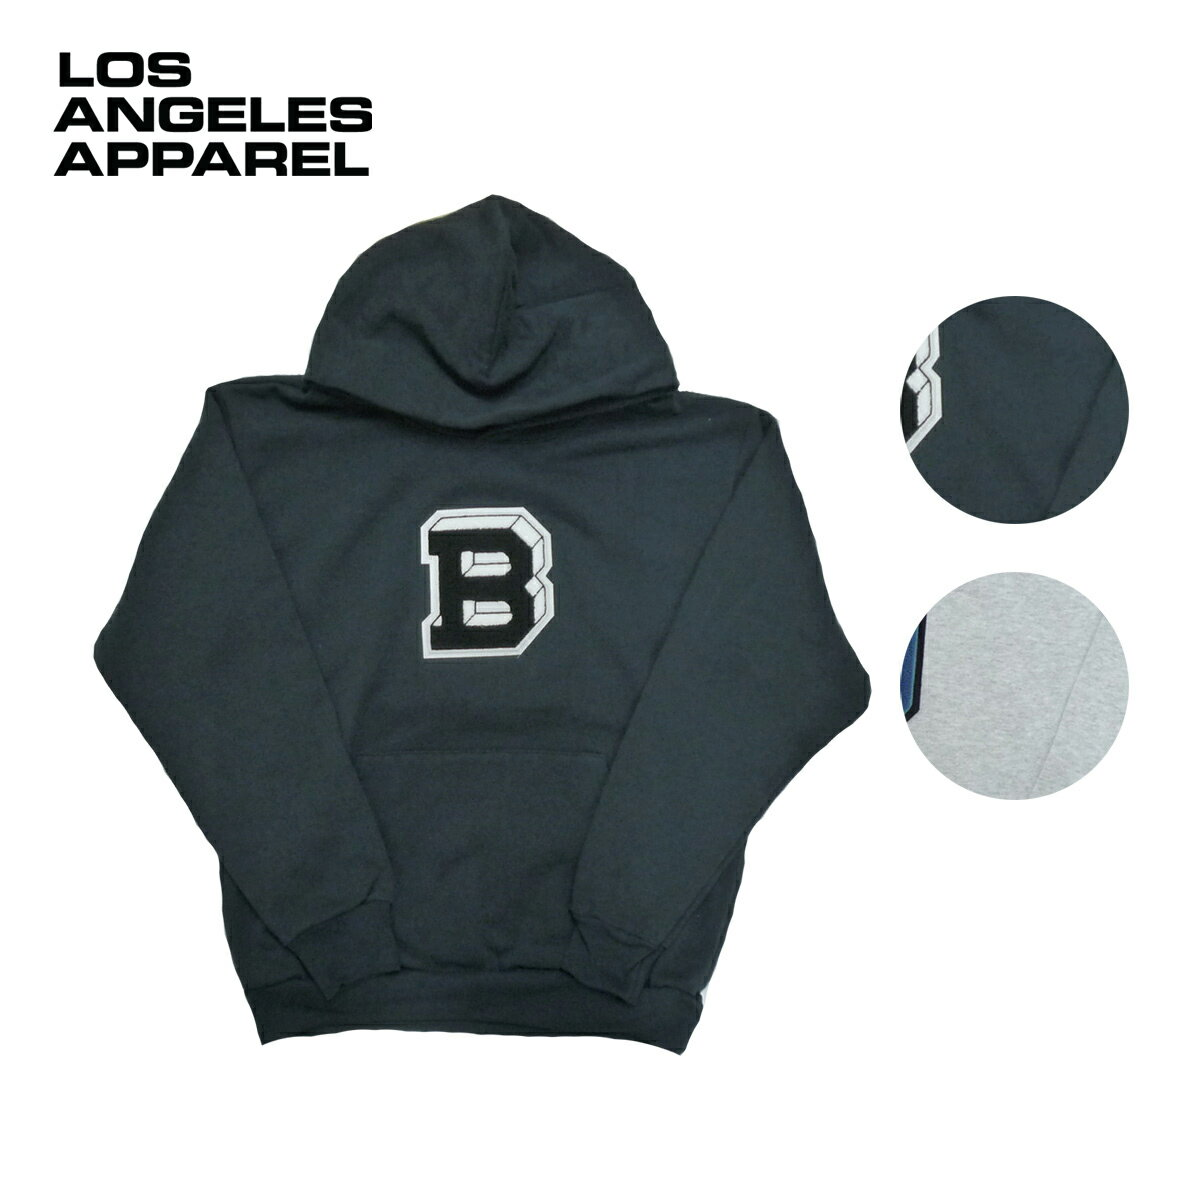 LOS ANGELES APPAREL ロサンゼルスアパレル TAILGATE別注 14oz WAPPEN SWEAT P/O HOODIE